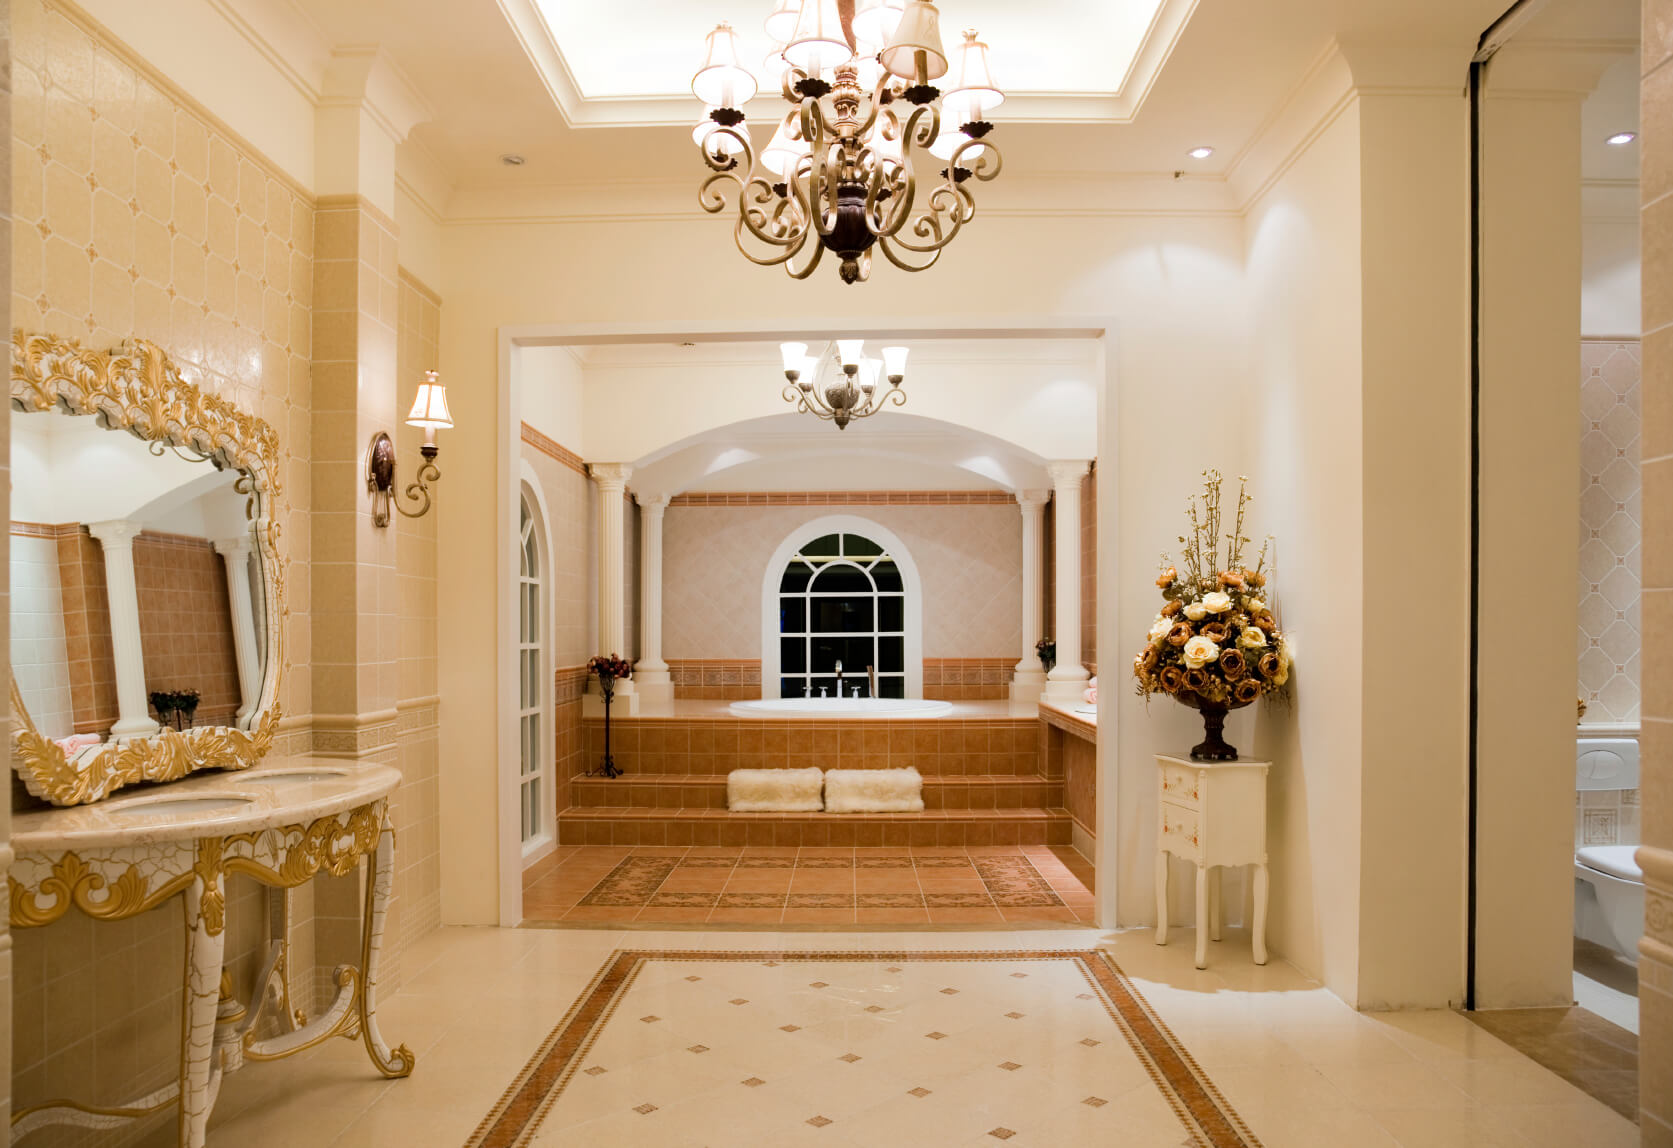 Extravagant doesn't even begin to describe this luxurious bathroom. Skylights assist hanging chandeliers to brighten this gorgeous space. Details such as gold gilded mirrors, varied tile work and patterns, and the professionally designed bouquet of brown and cream roses hint that no expense was spared in the creation of this phenomenal space.